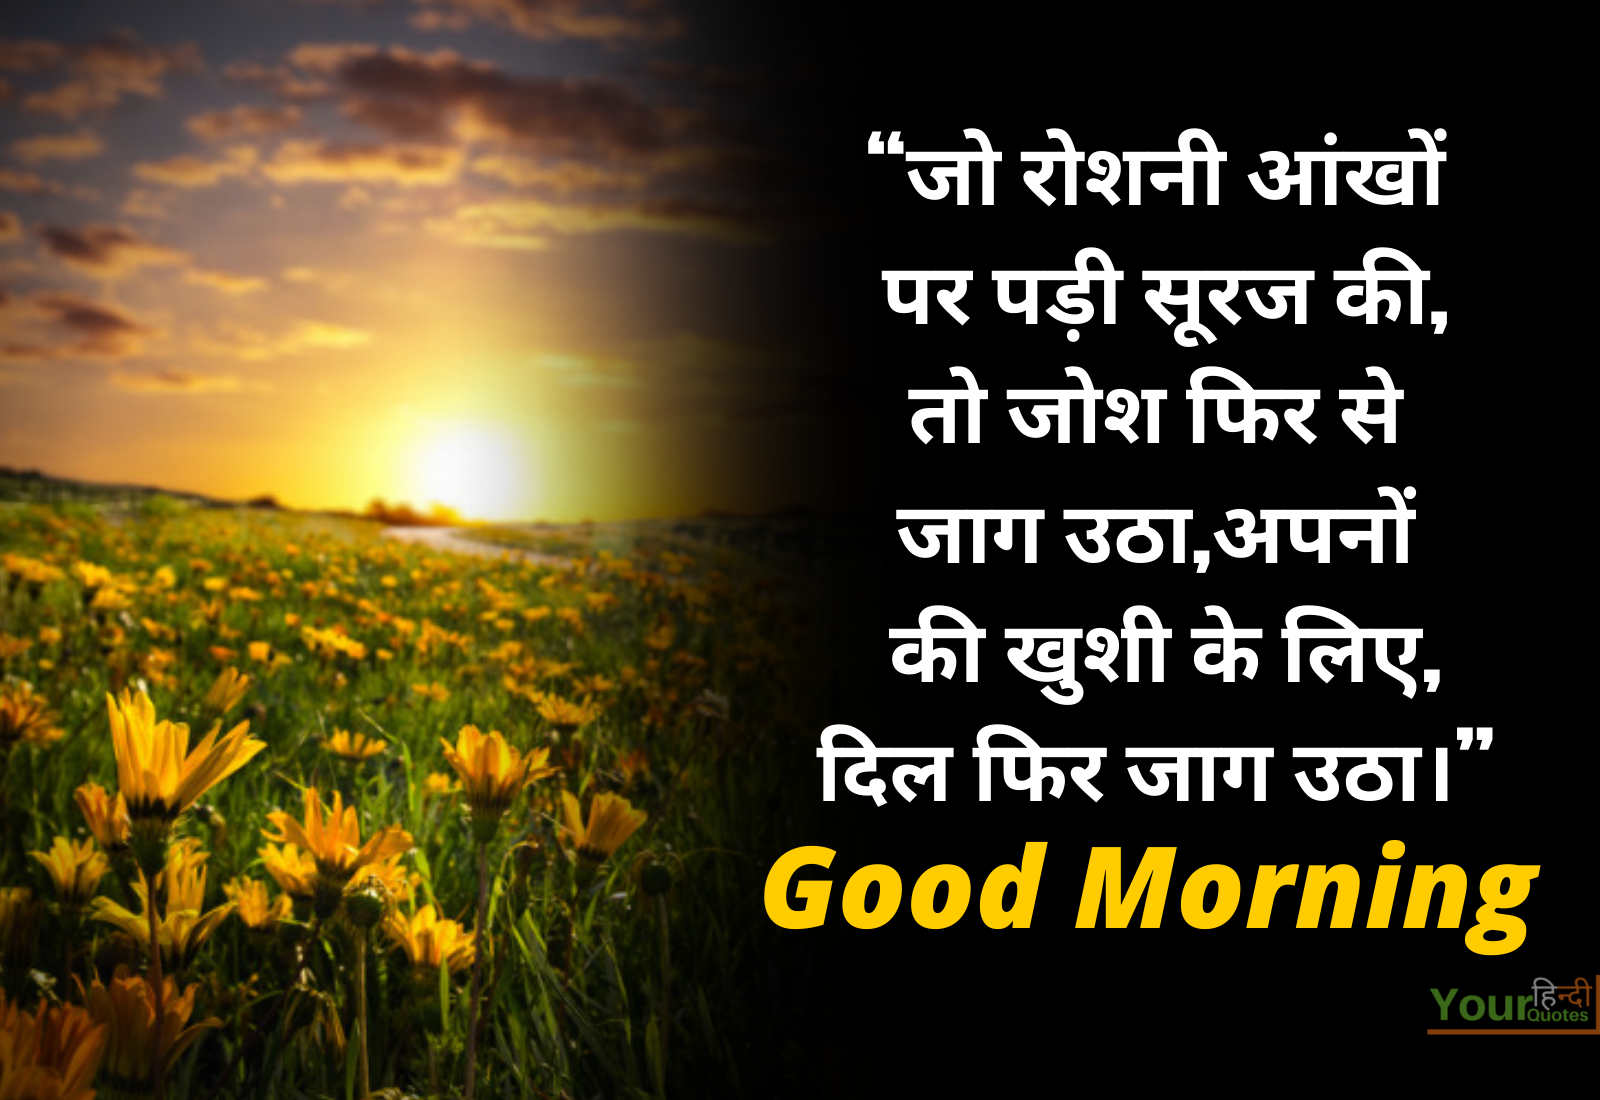 Best Hindi Morning Quotes Image